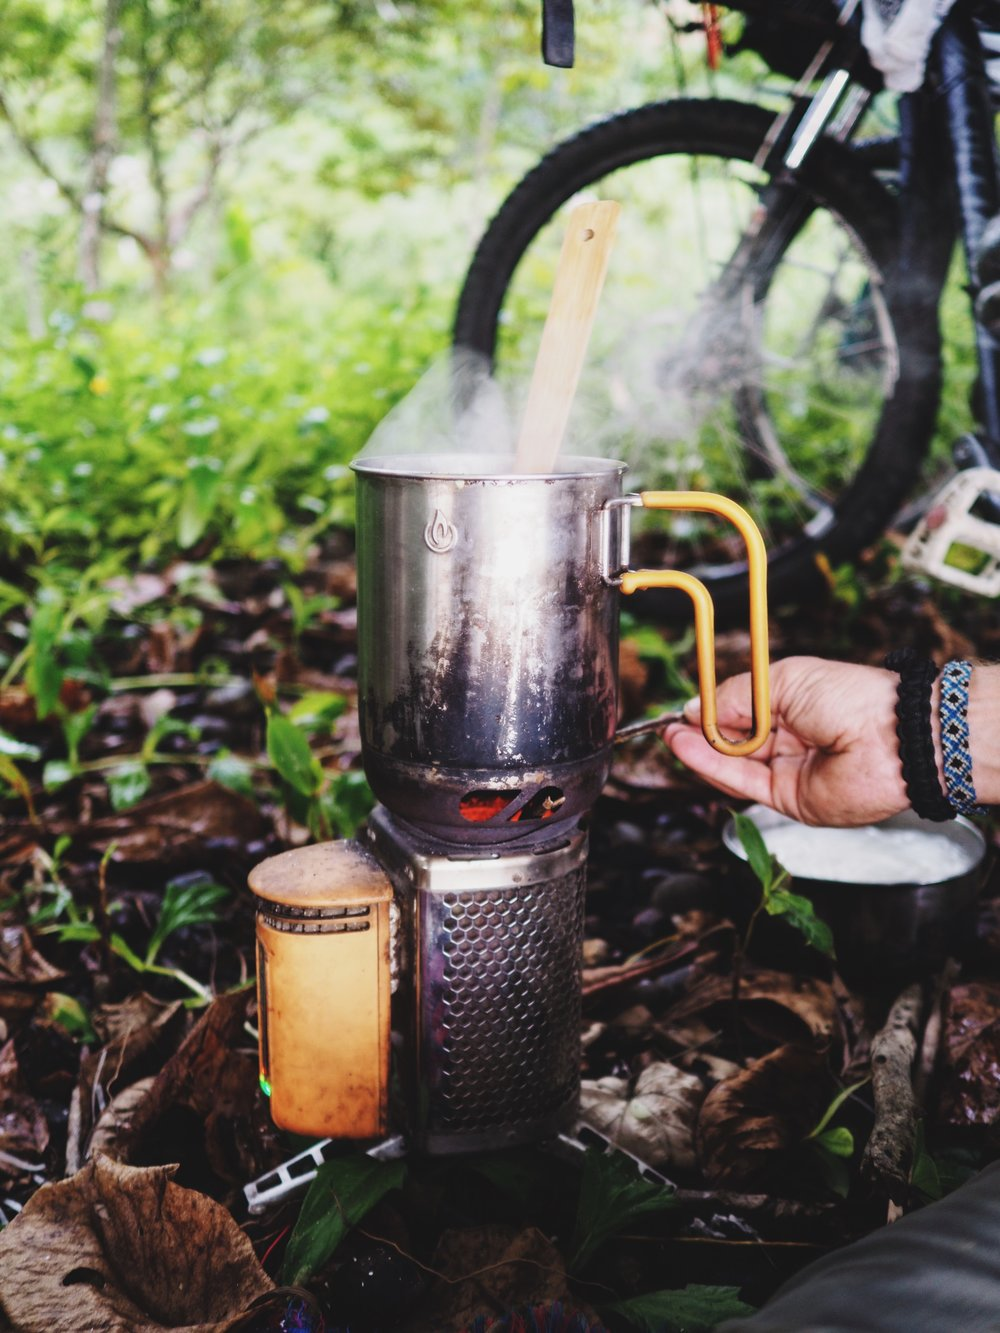 Our ever trusty BioLite Campstove cooking us up a tasty meal